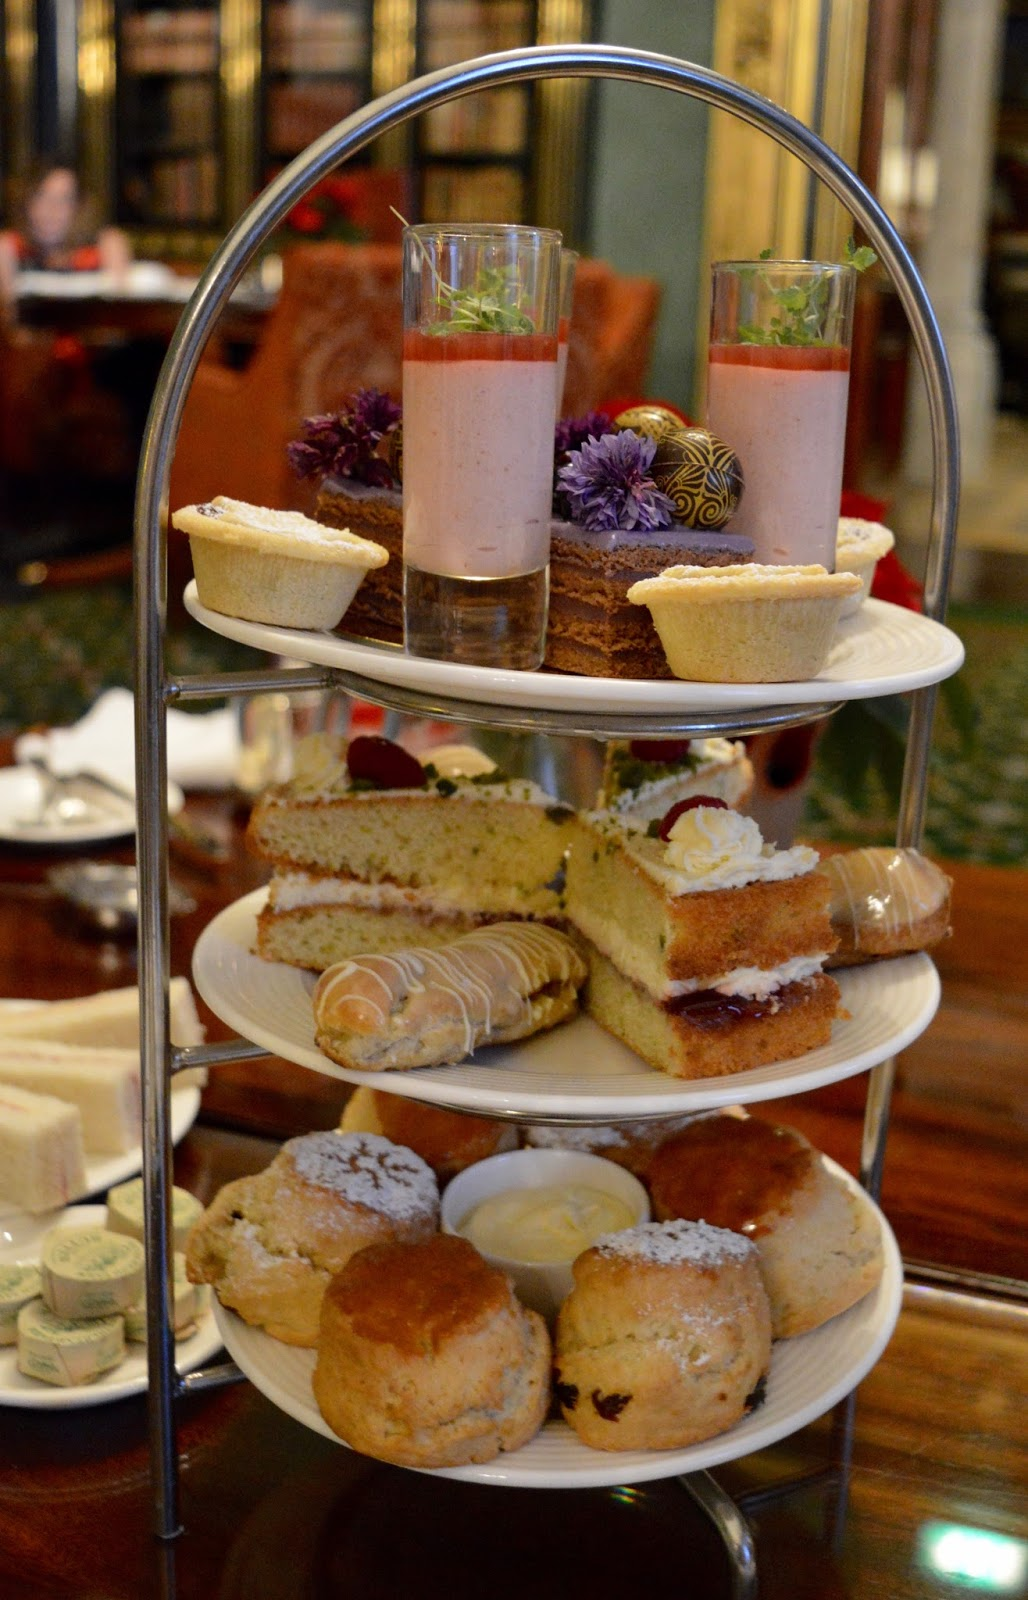 The Best Restaurants in the North East - best afternoon tea - Wynyard hall